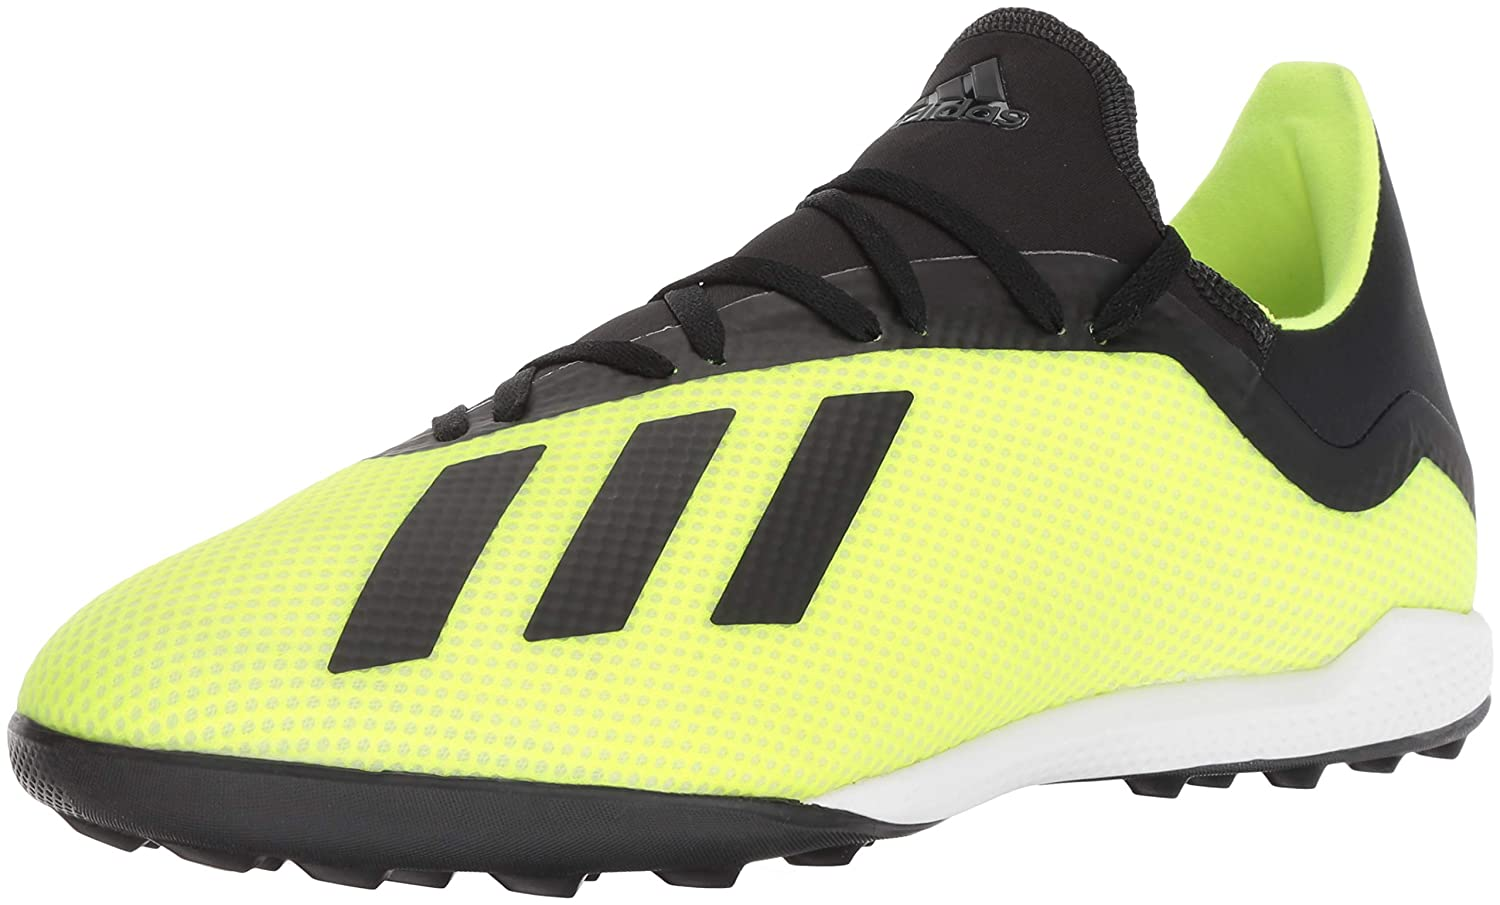 e07f3f625083 Amazon.com | adidas Men's X Tango 18.3 Turf Soccer Shoe | Soccer